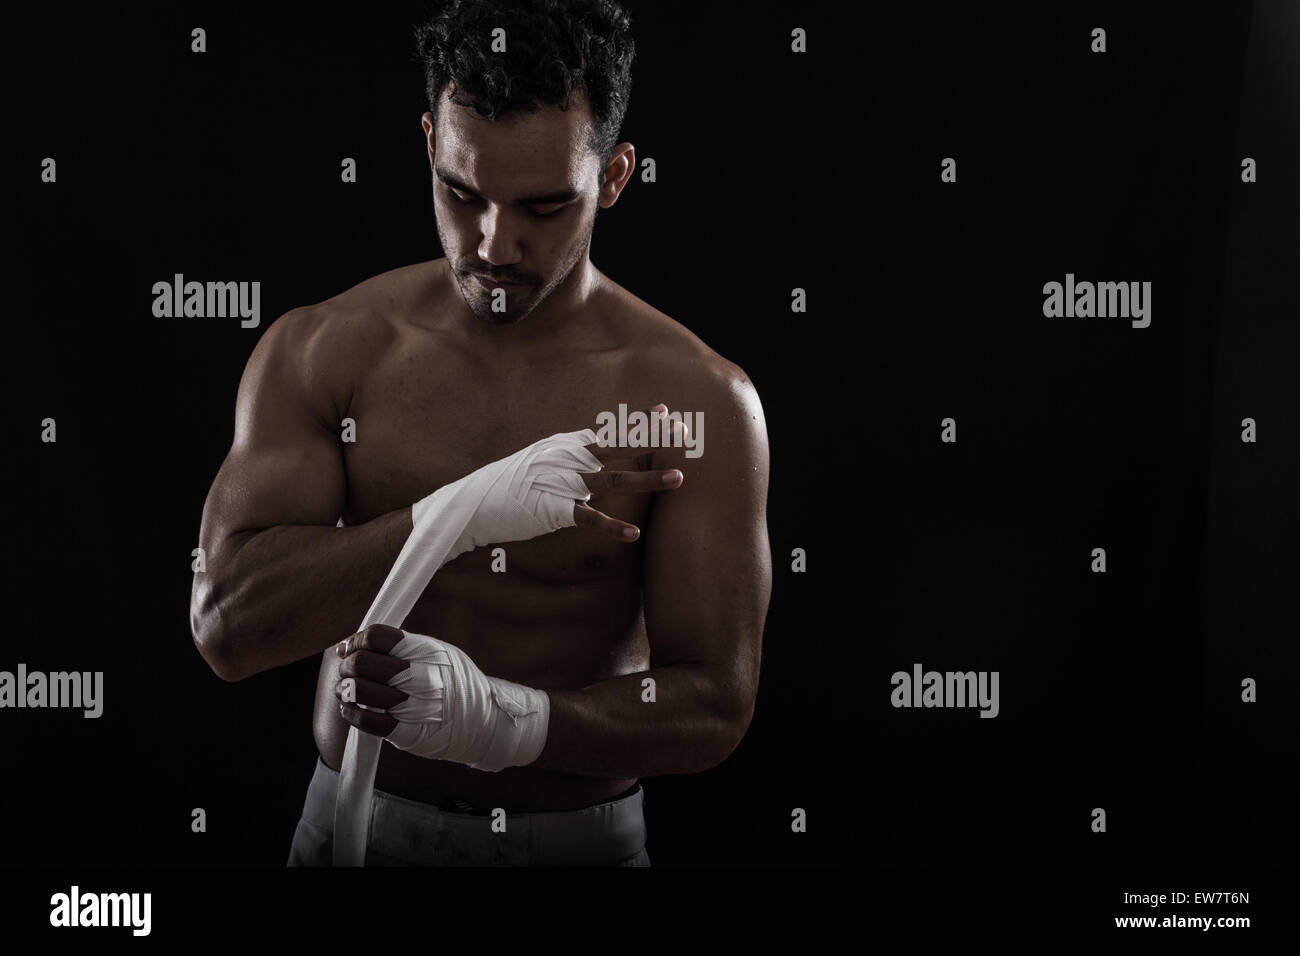 Man getting ready for boxing practice - Stock Image